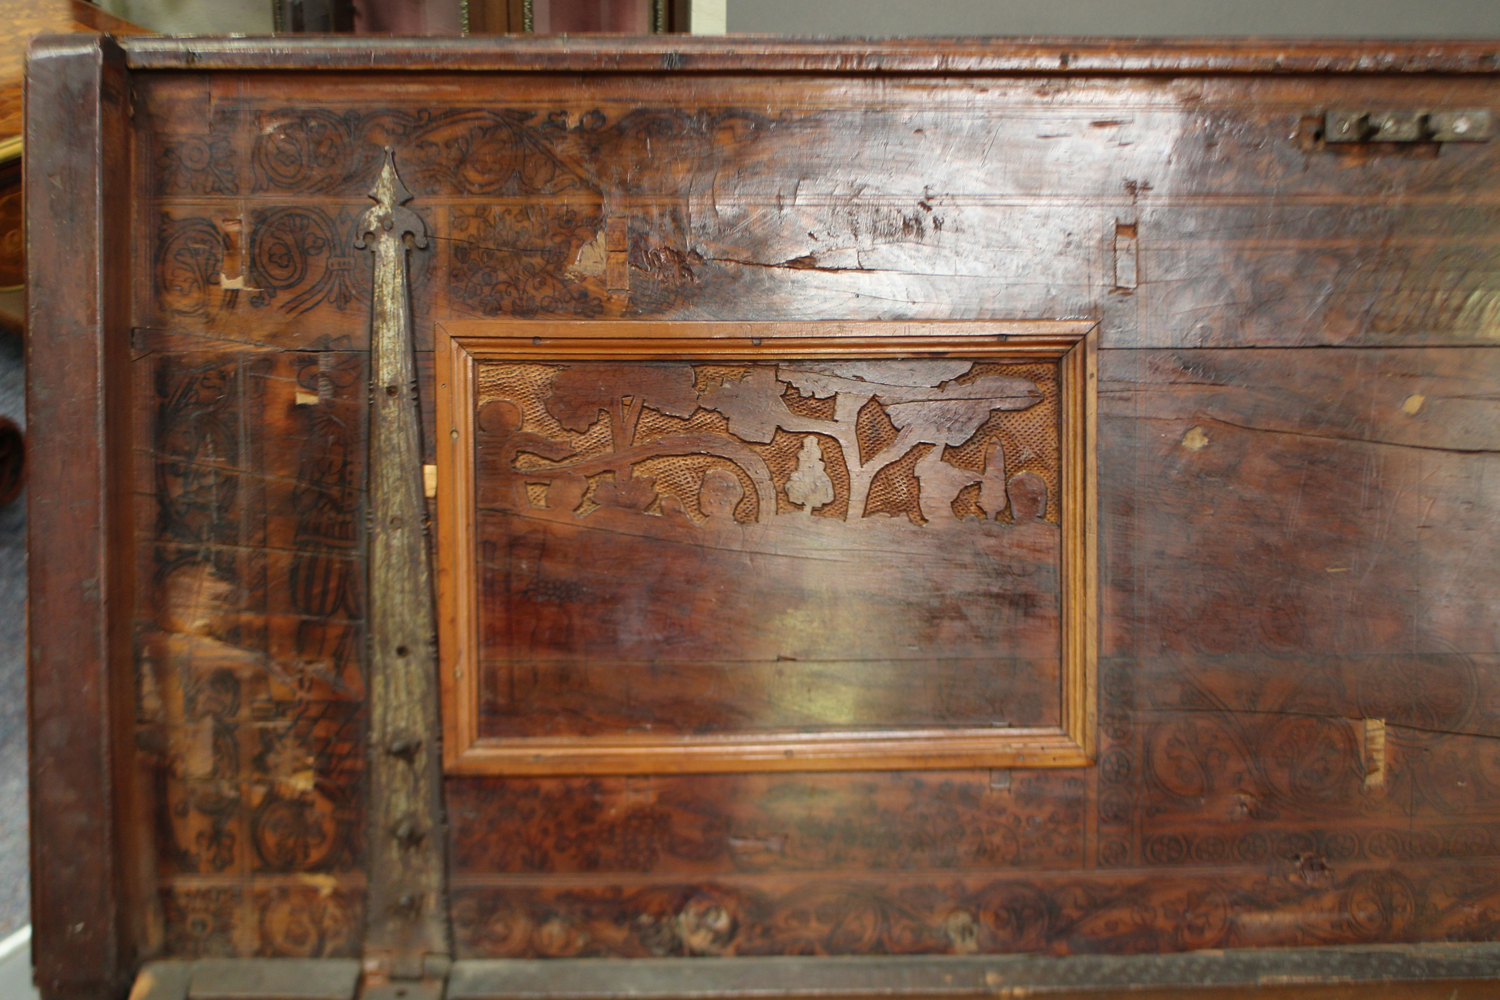 A large 17th century Italian cedar and walnut Adige chest, the lid hinged to reveal poker and pen - Image 5 of 13